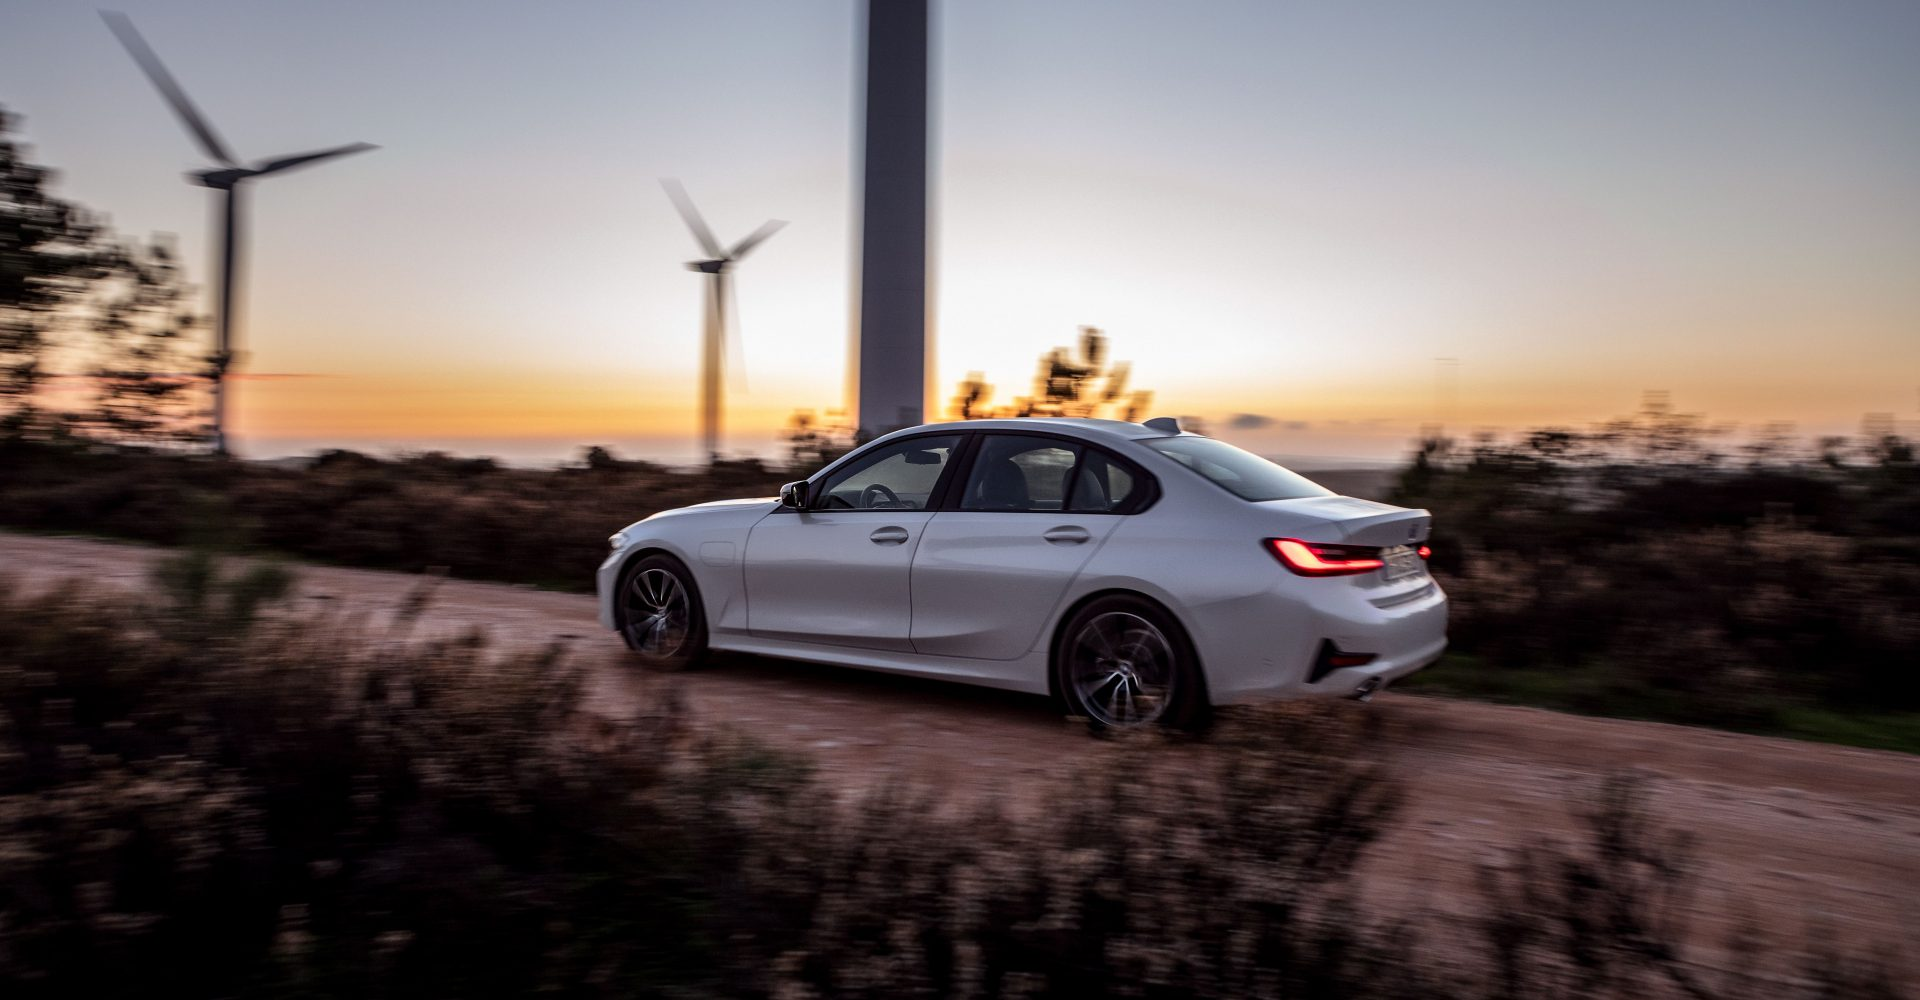 The 5 best company cars for 2021